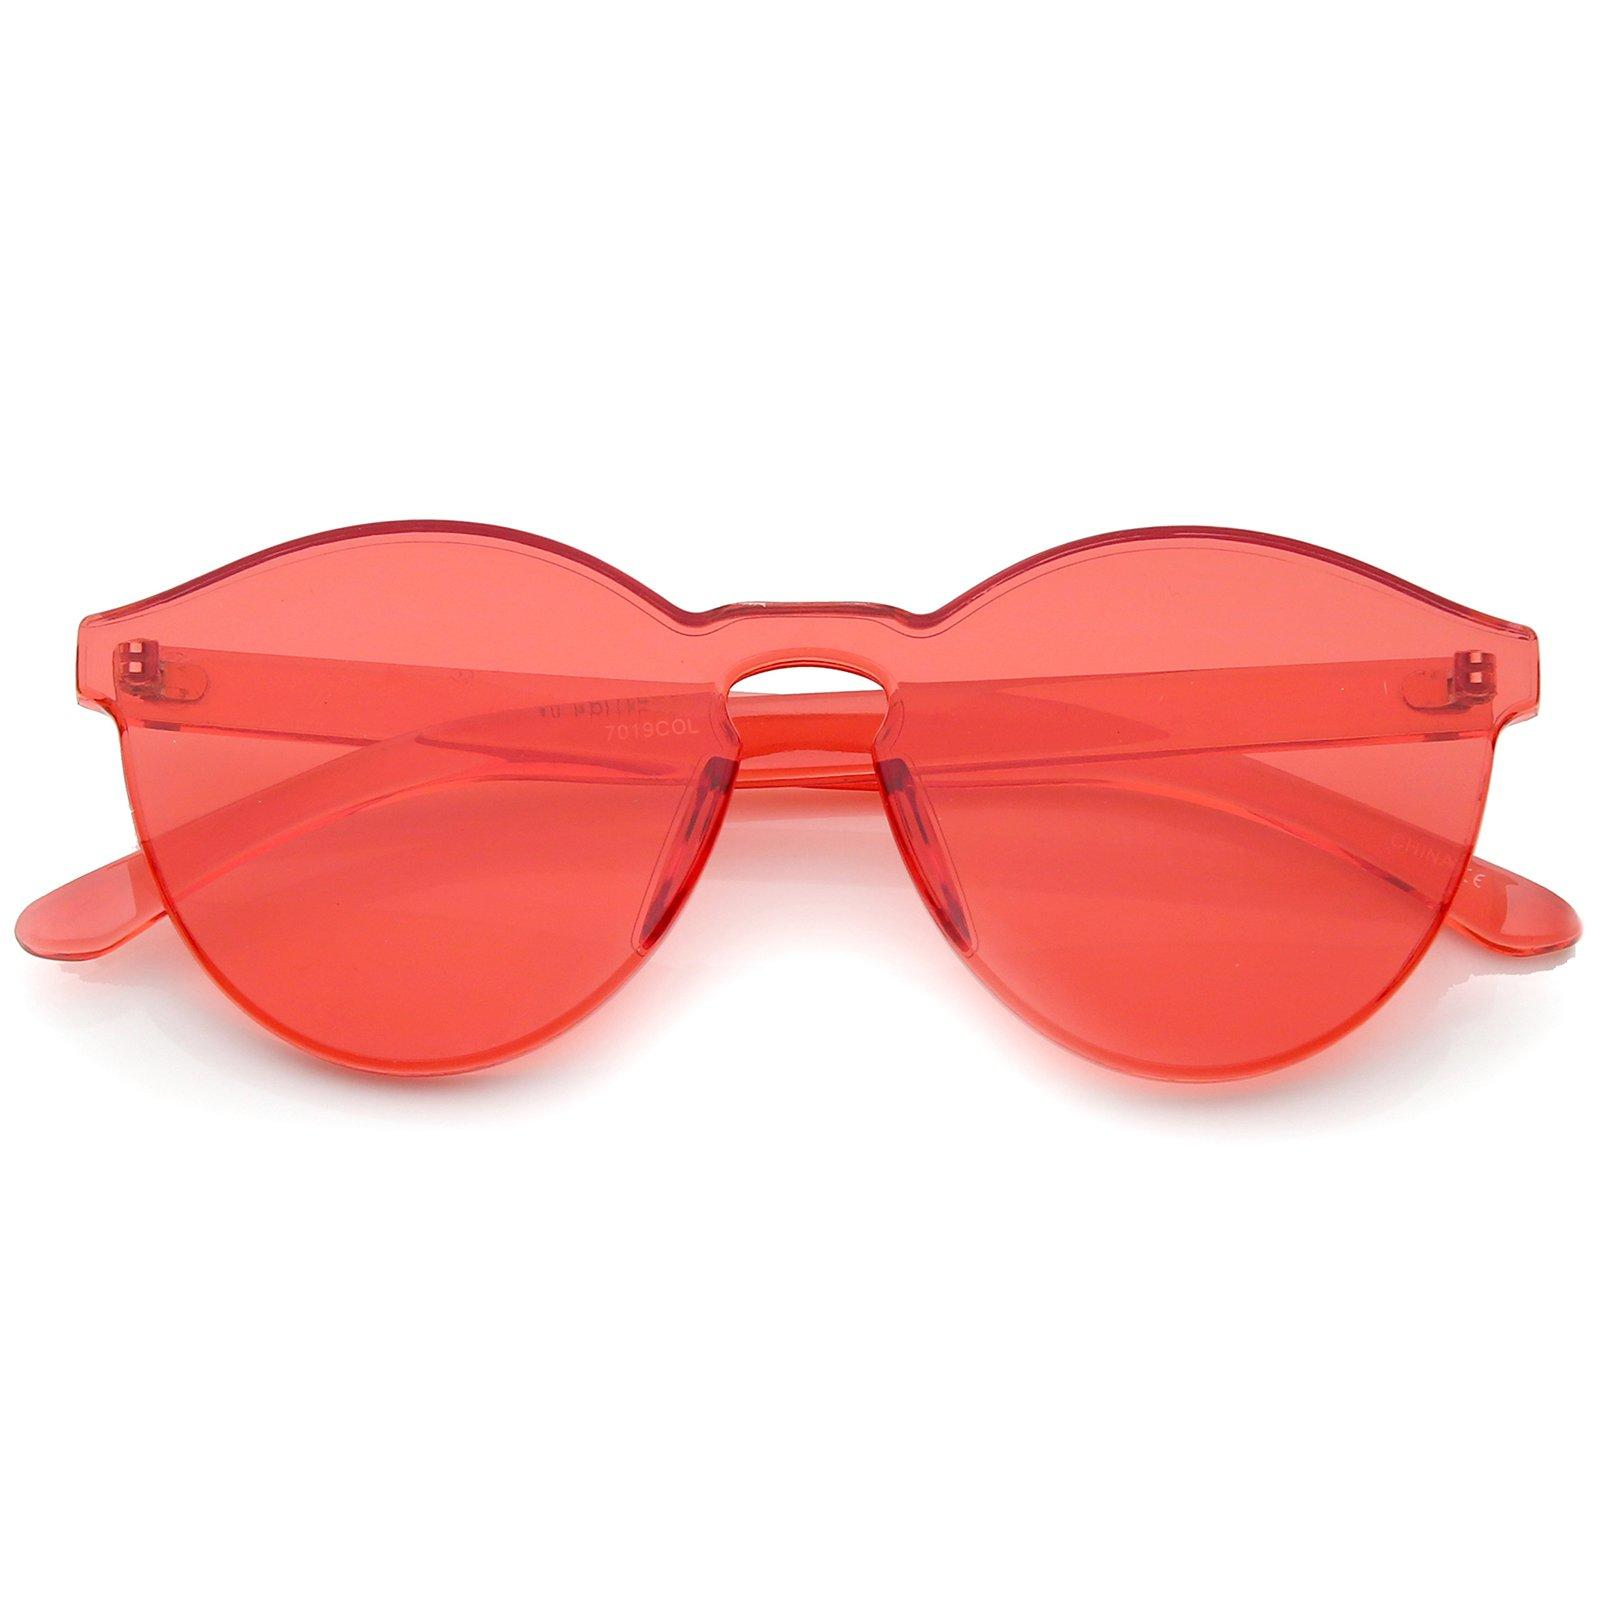 Image of One Piece PC Lens Rimless Ultra-Bold Colorful Mono Block Sunglasses 60mm